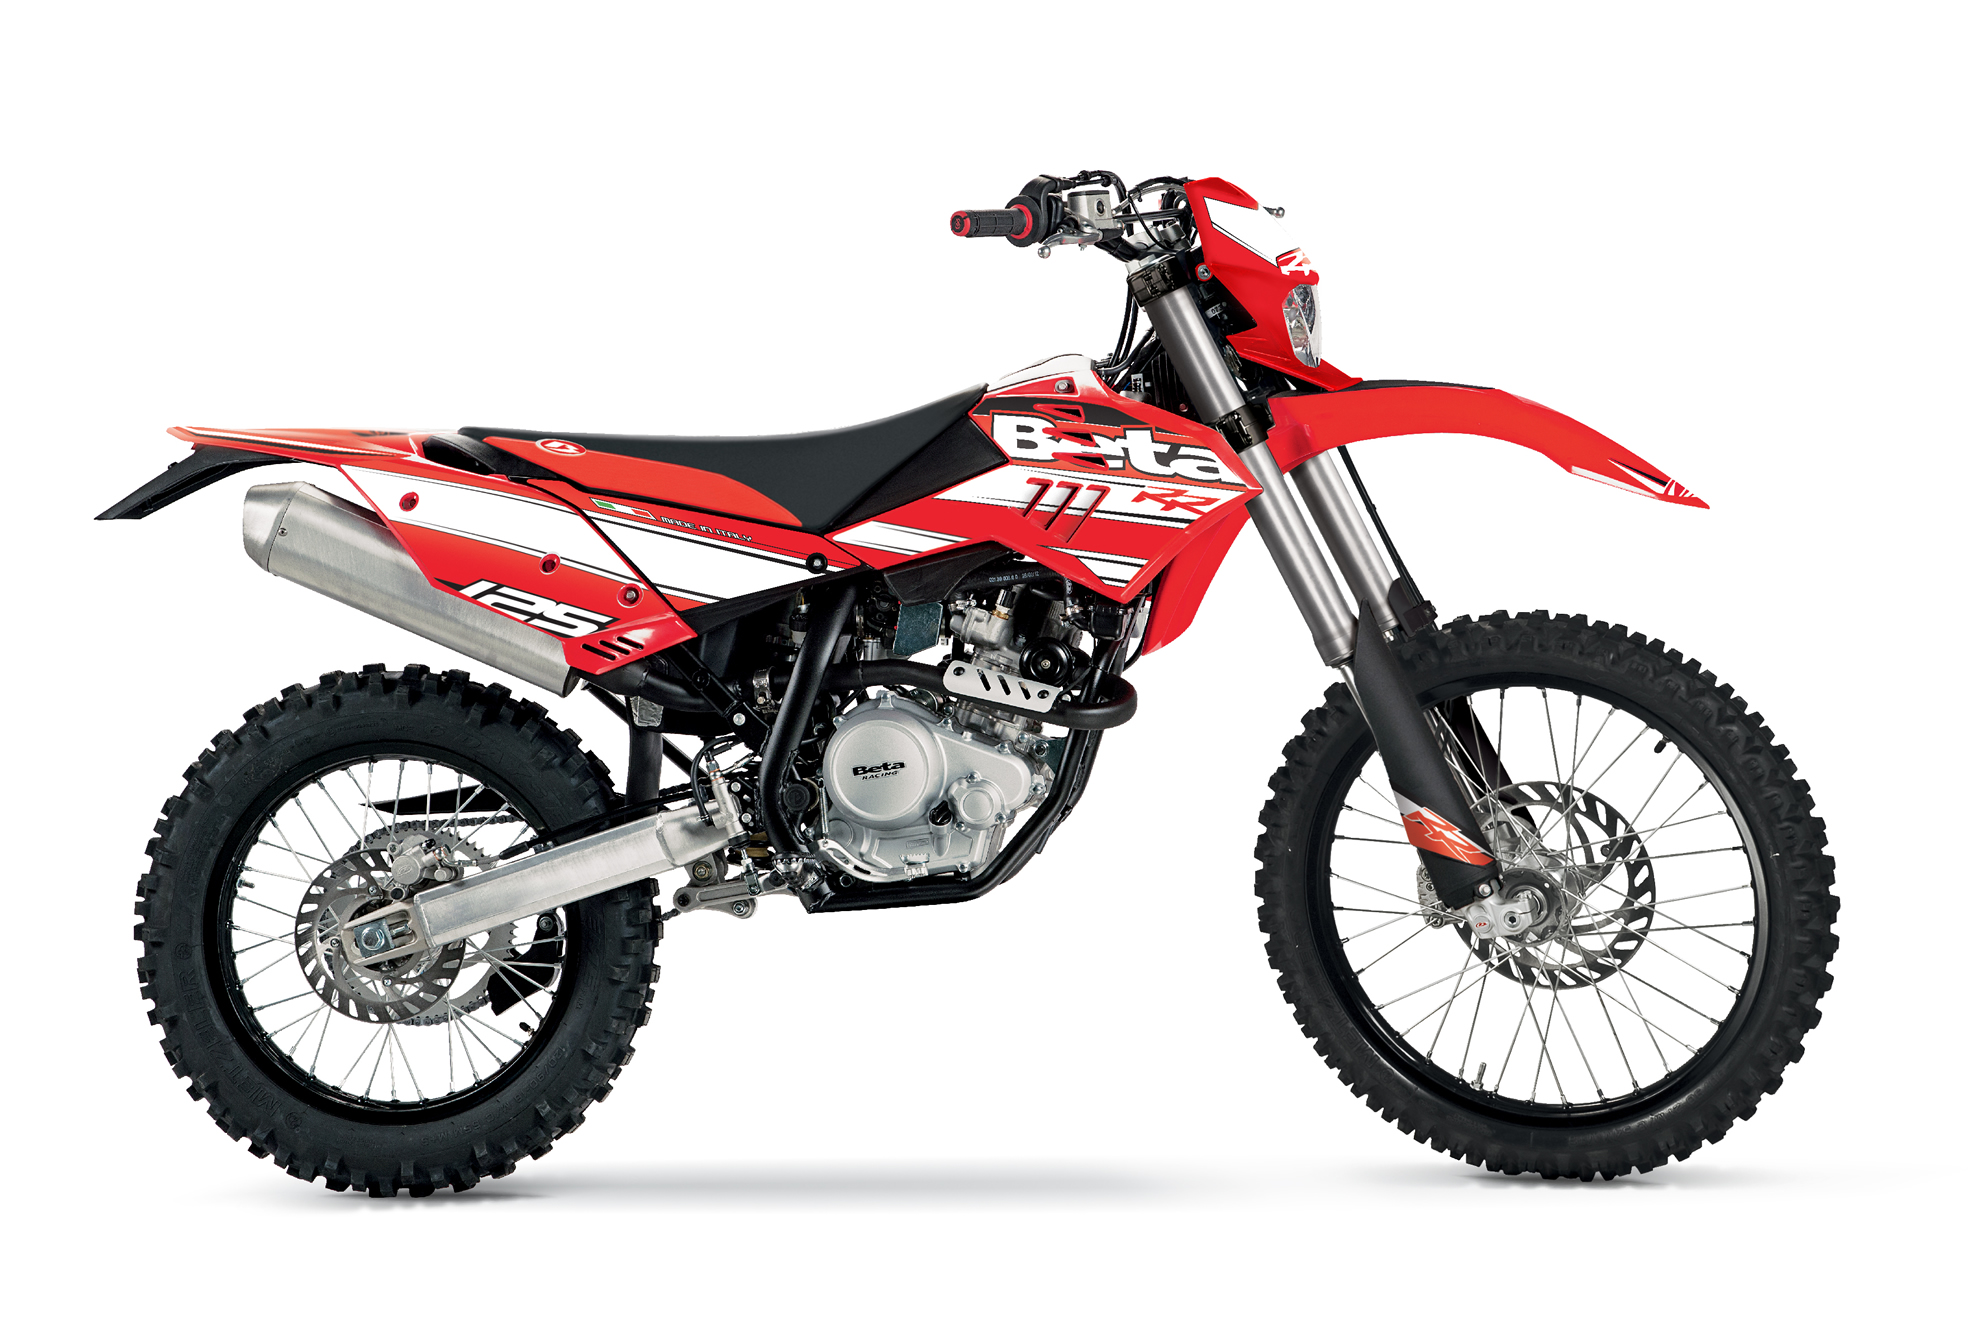 rr125lc-red